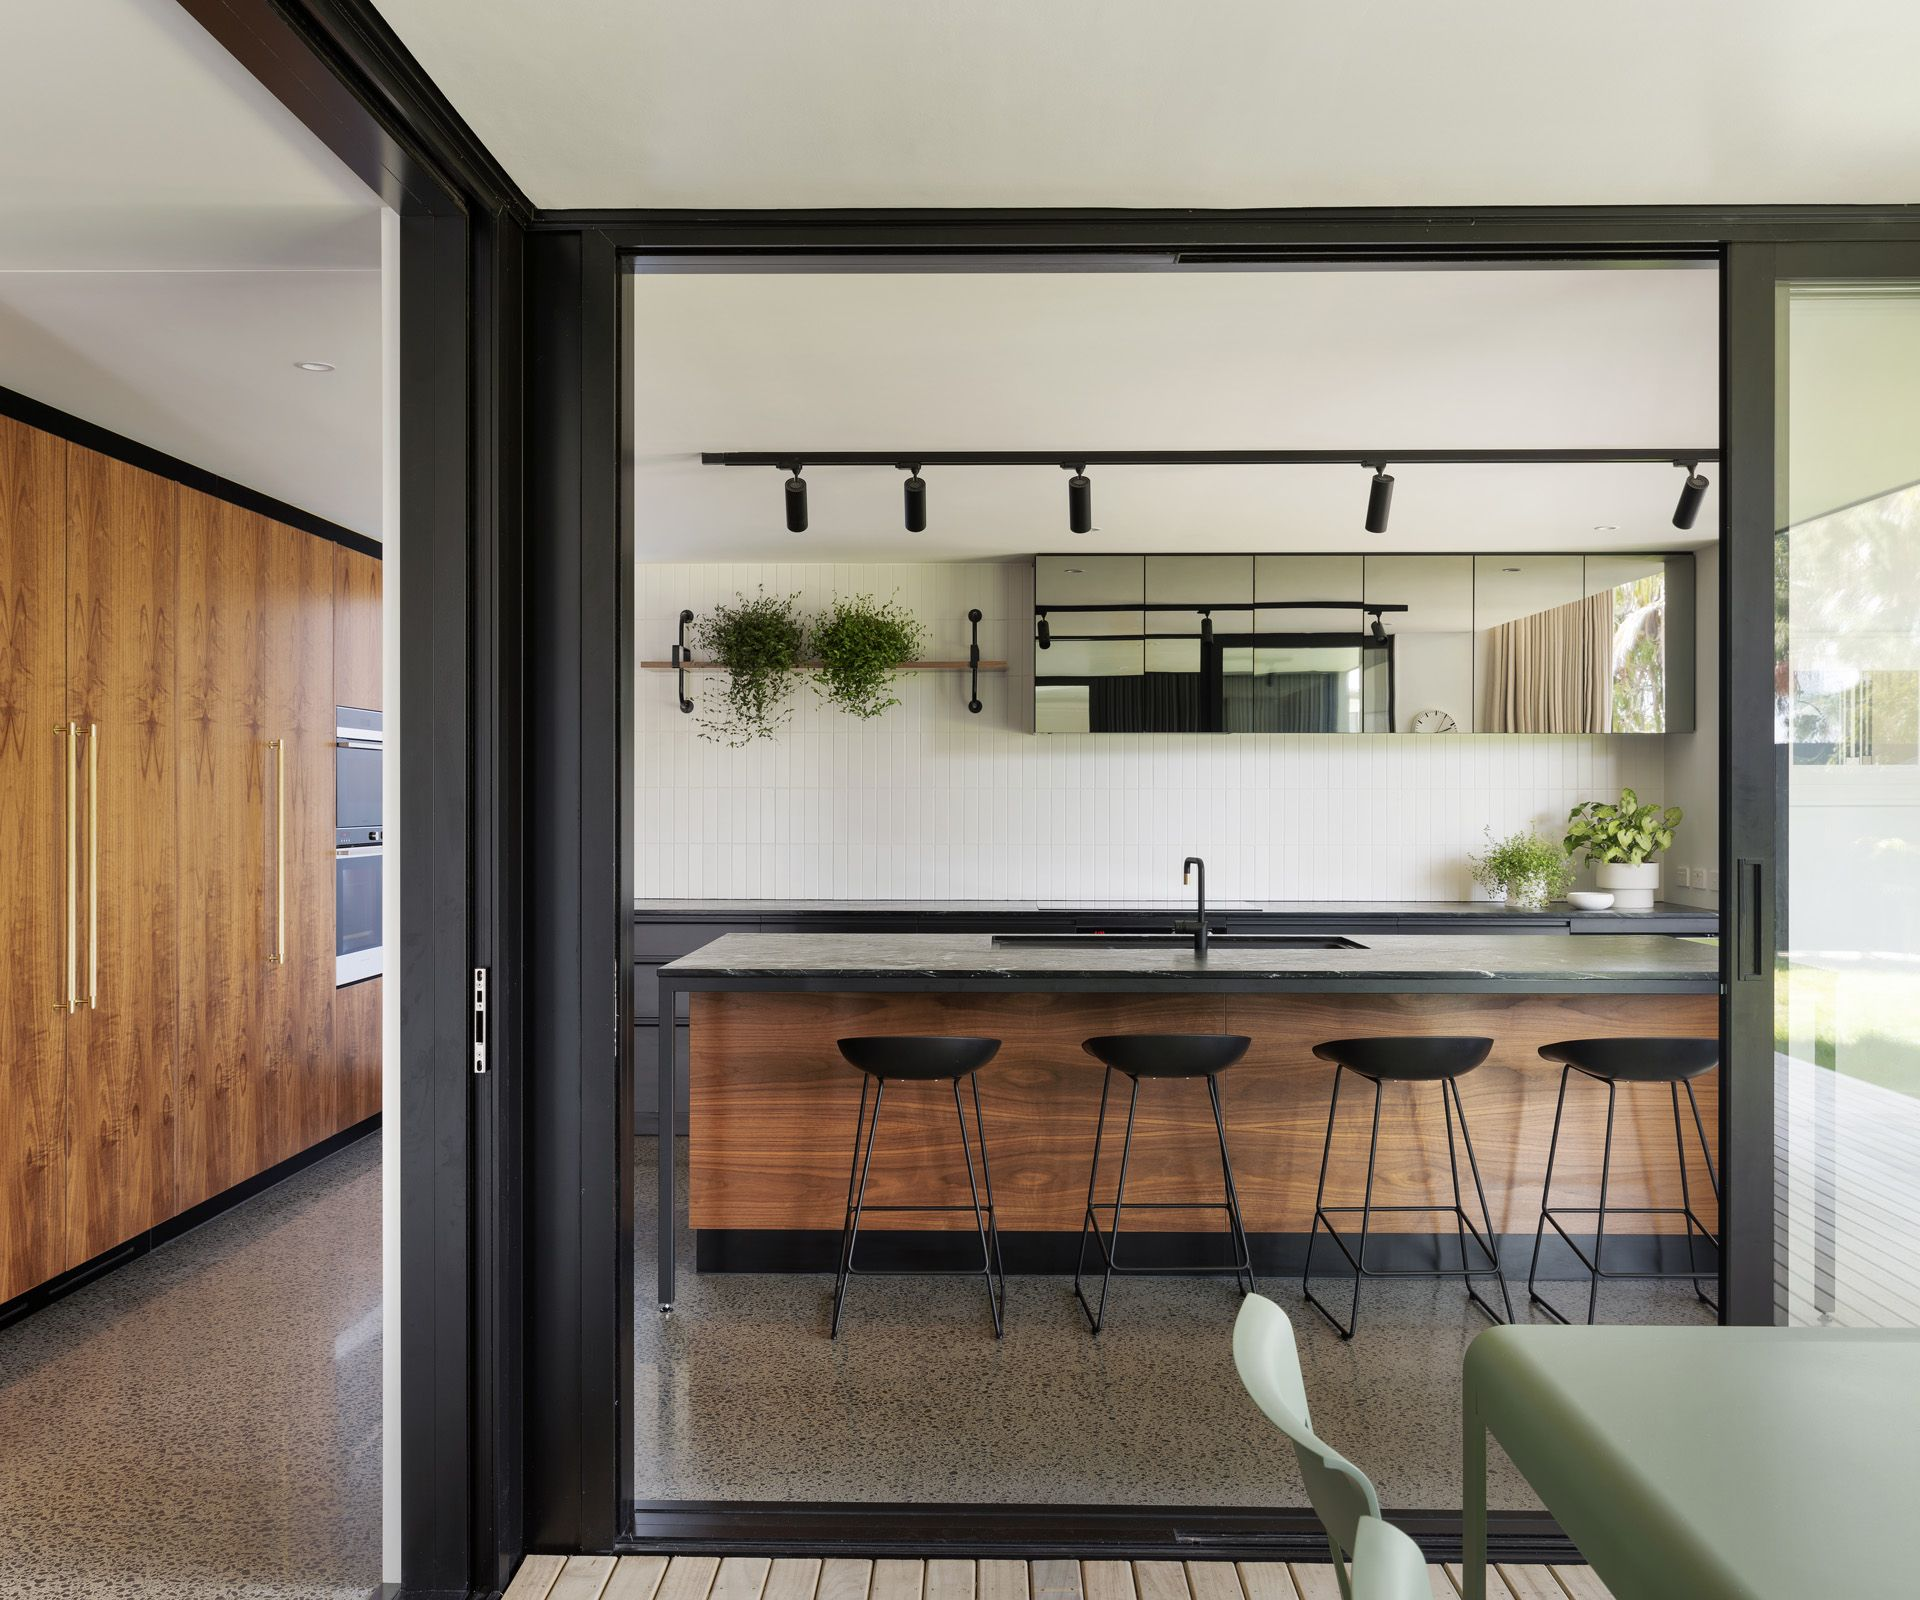 This Grey Lynn kitchen has the most sophisticated material